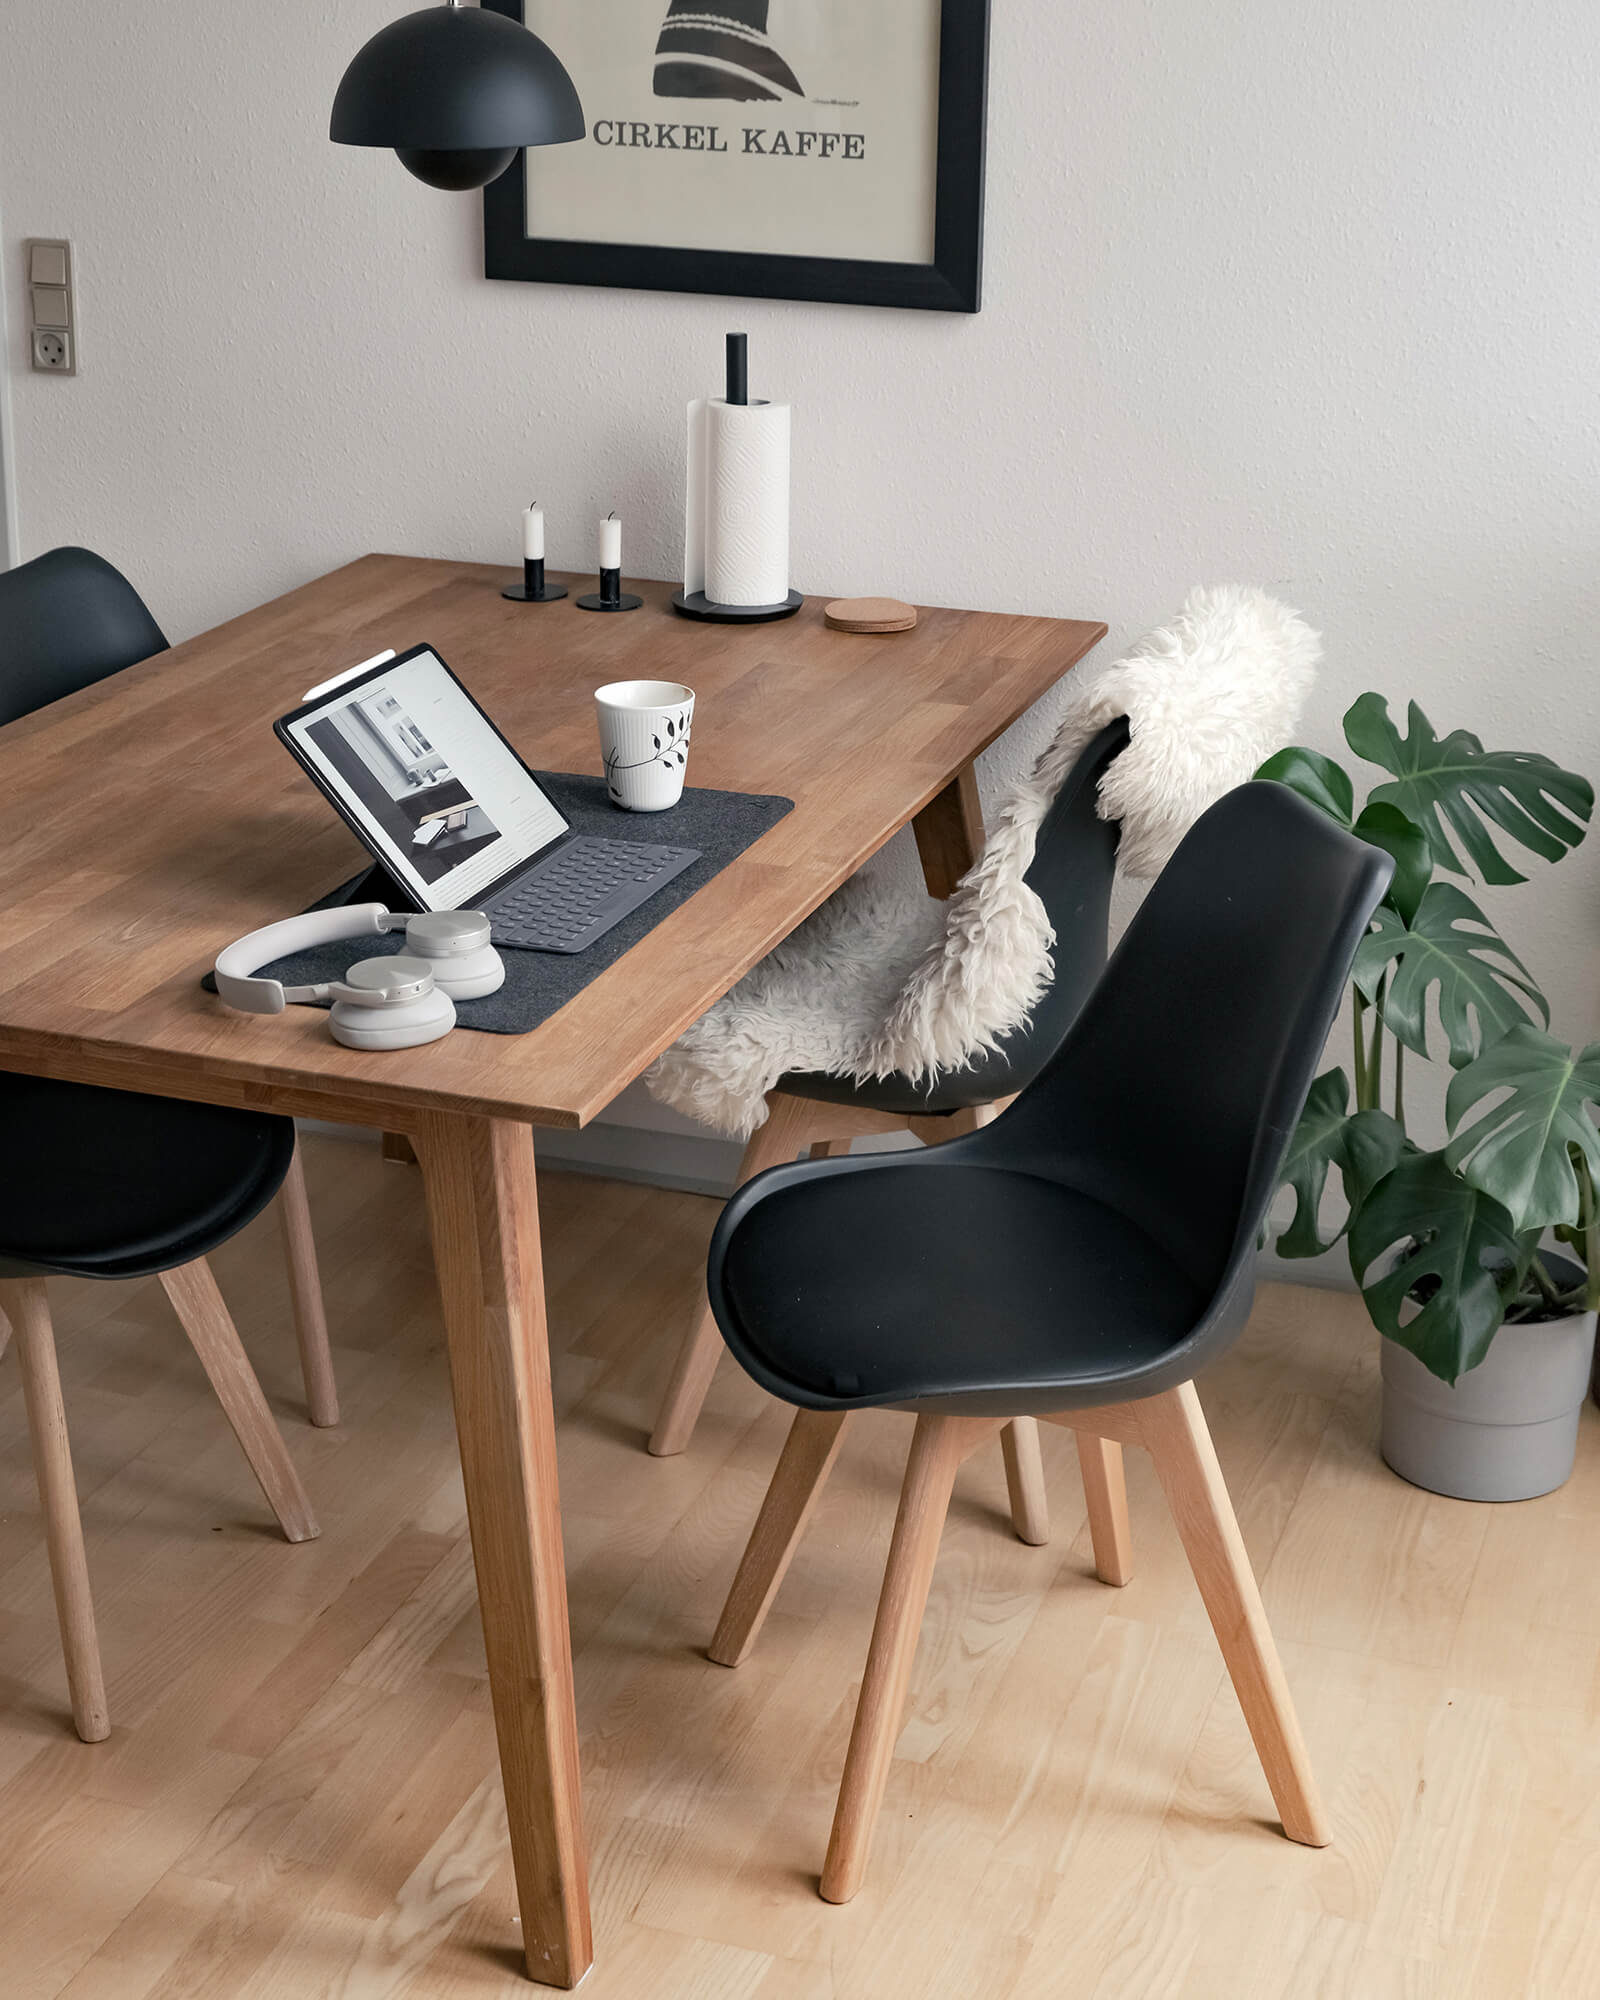 The best WFH tip of all times – change the scenery from time to time